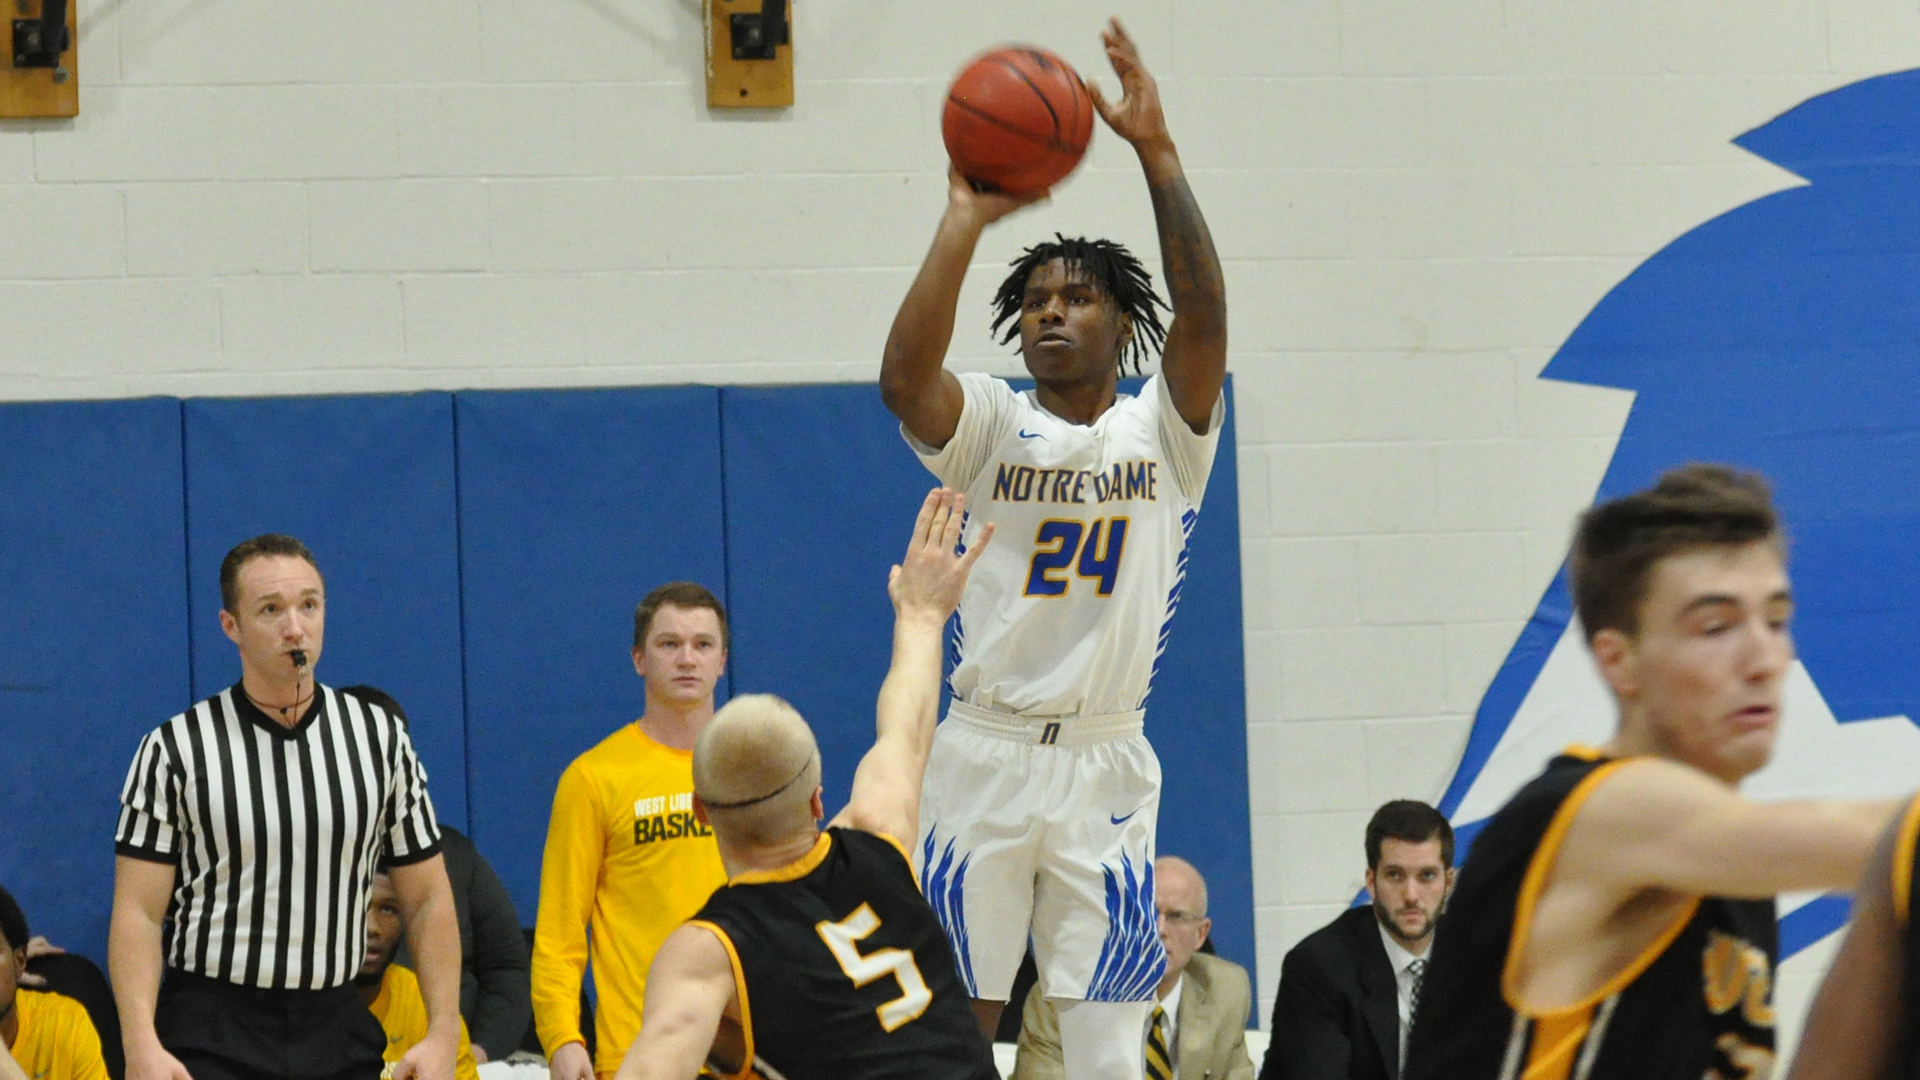 Halil Parks Men S Basketball Notre Dame College Athletics